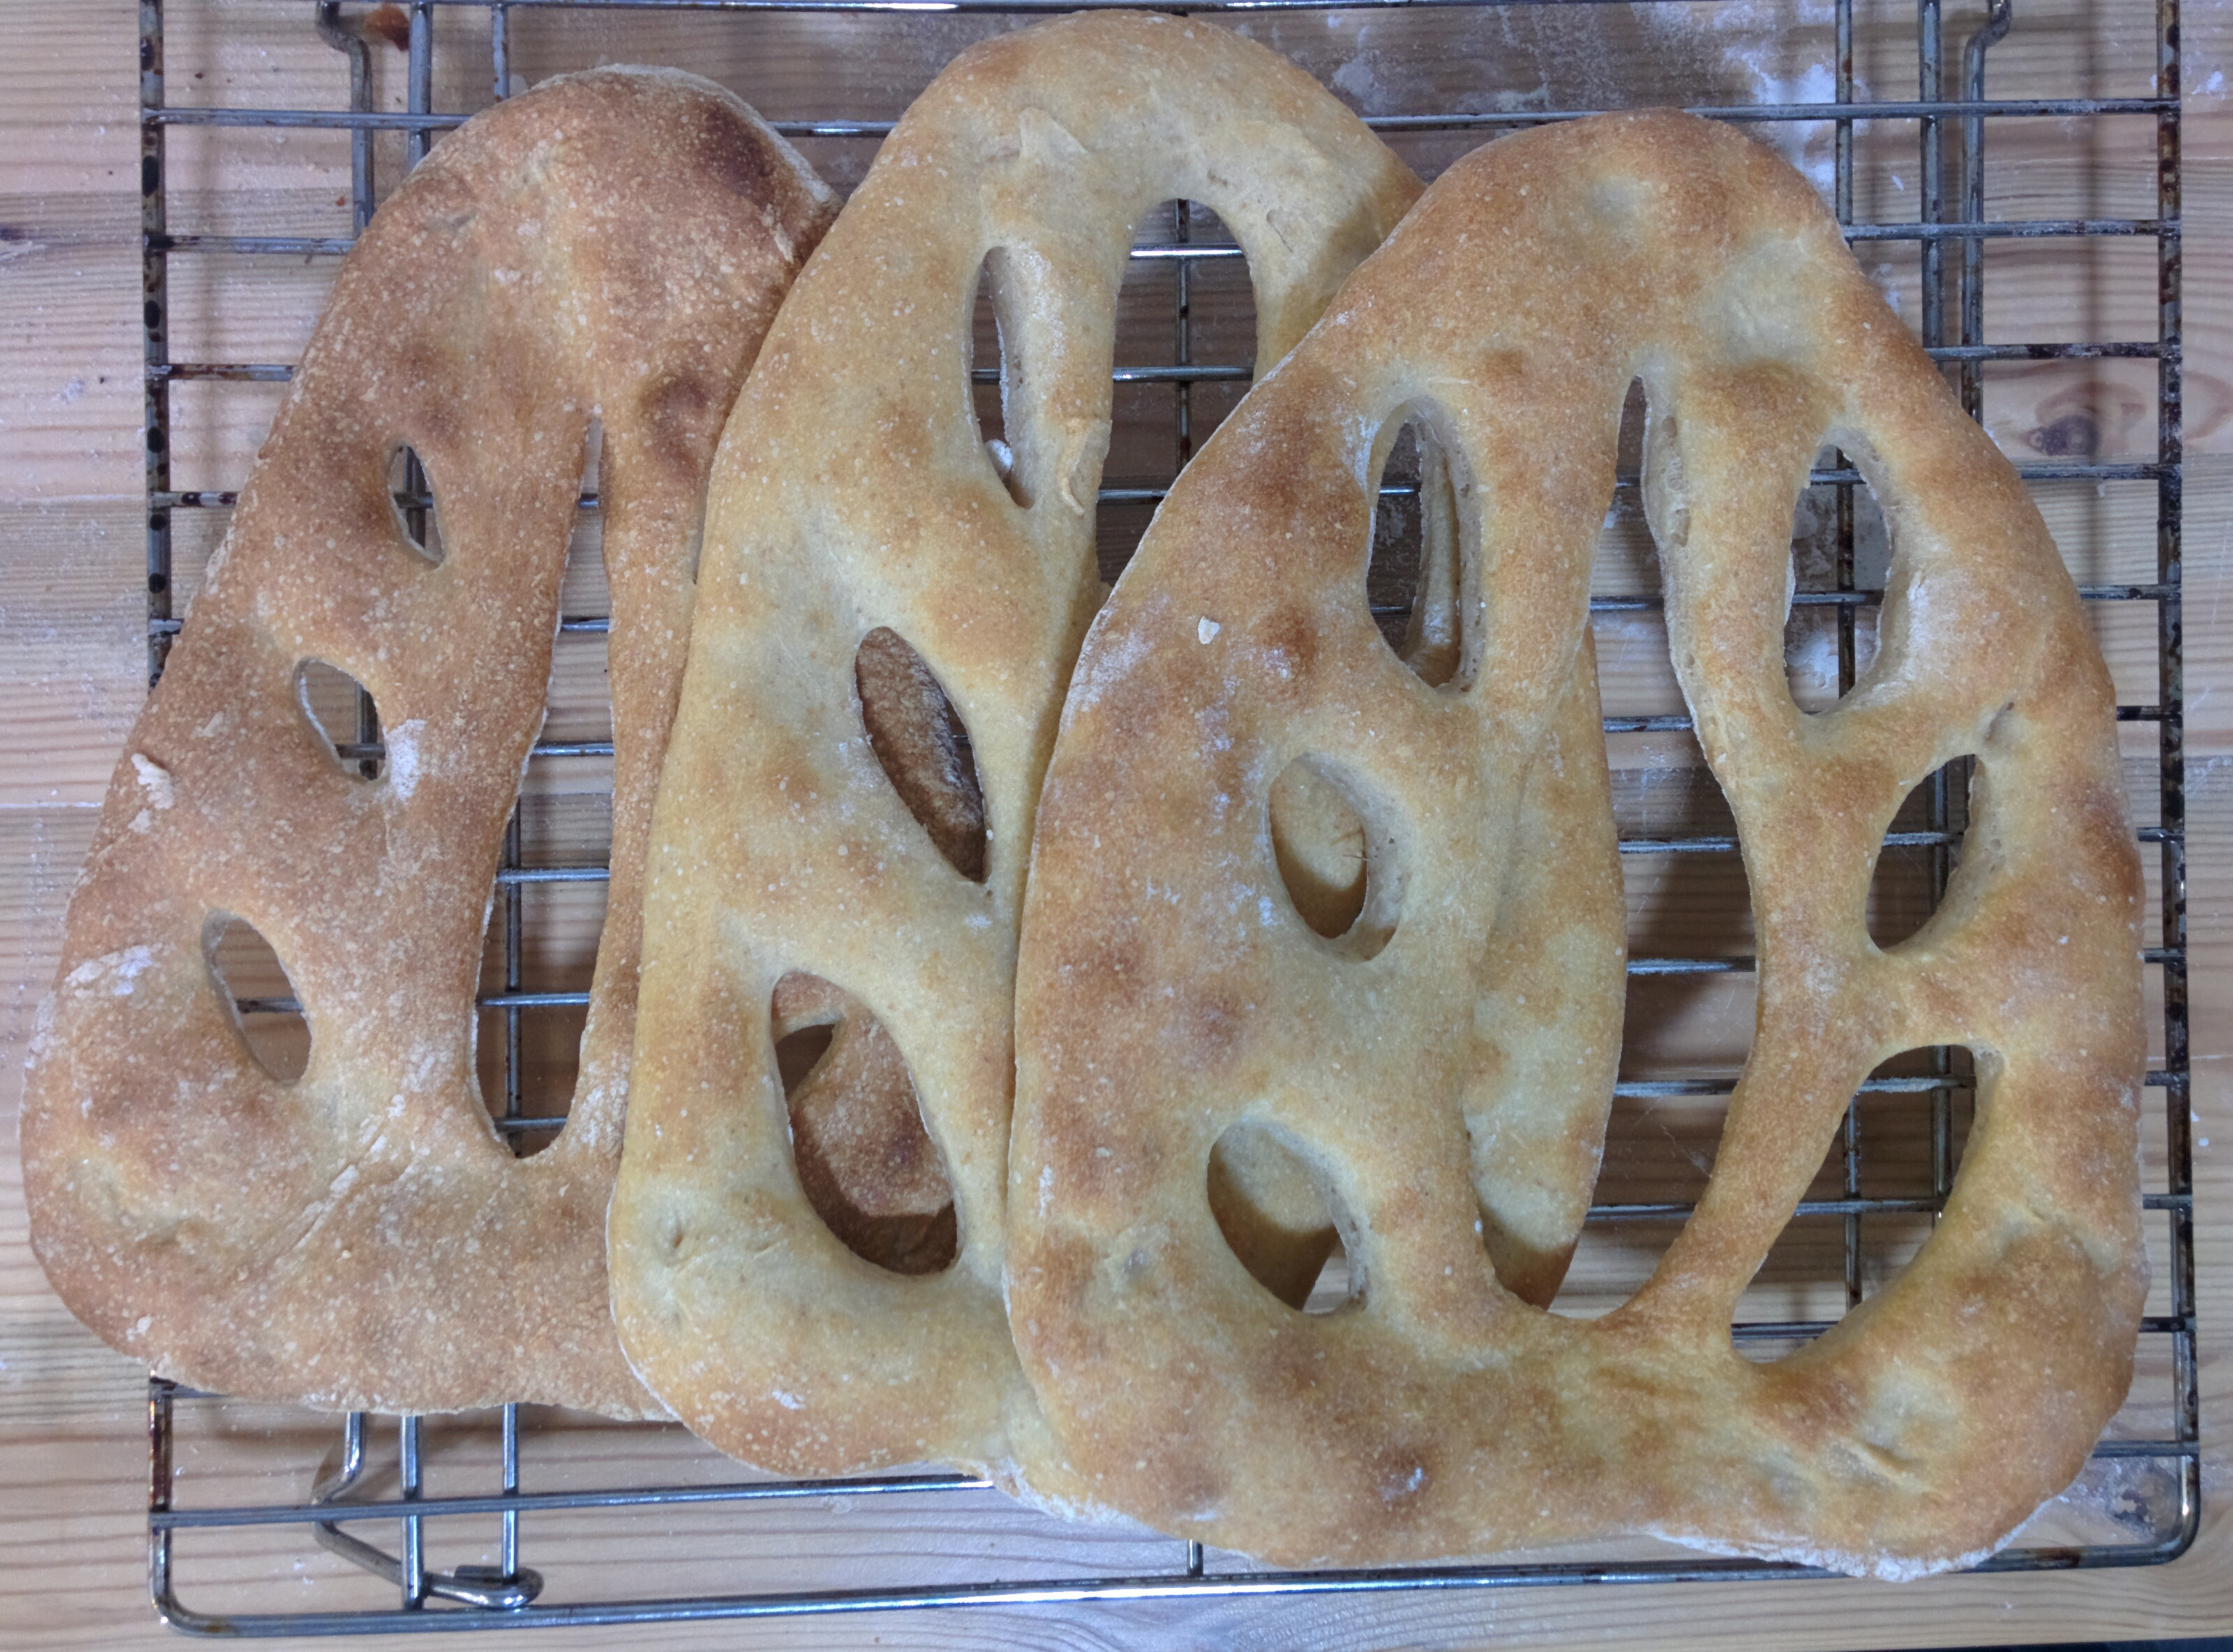 First fougasse